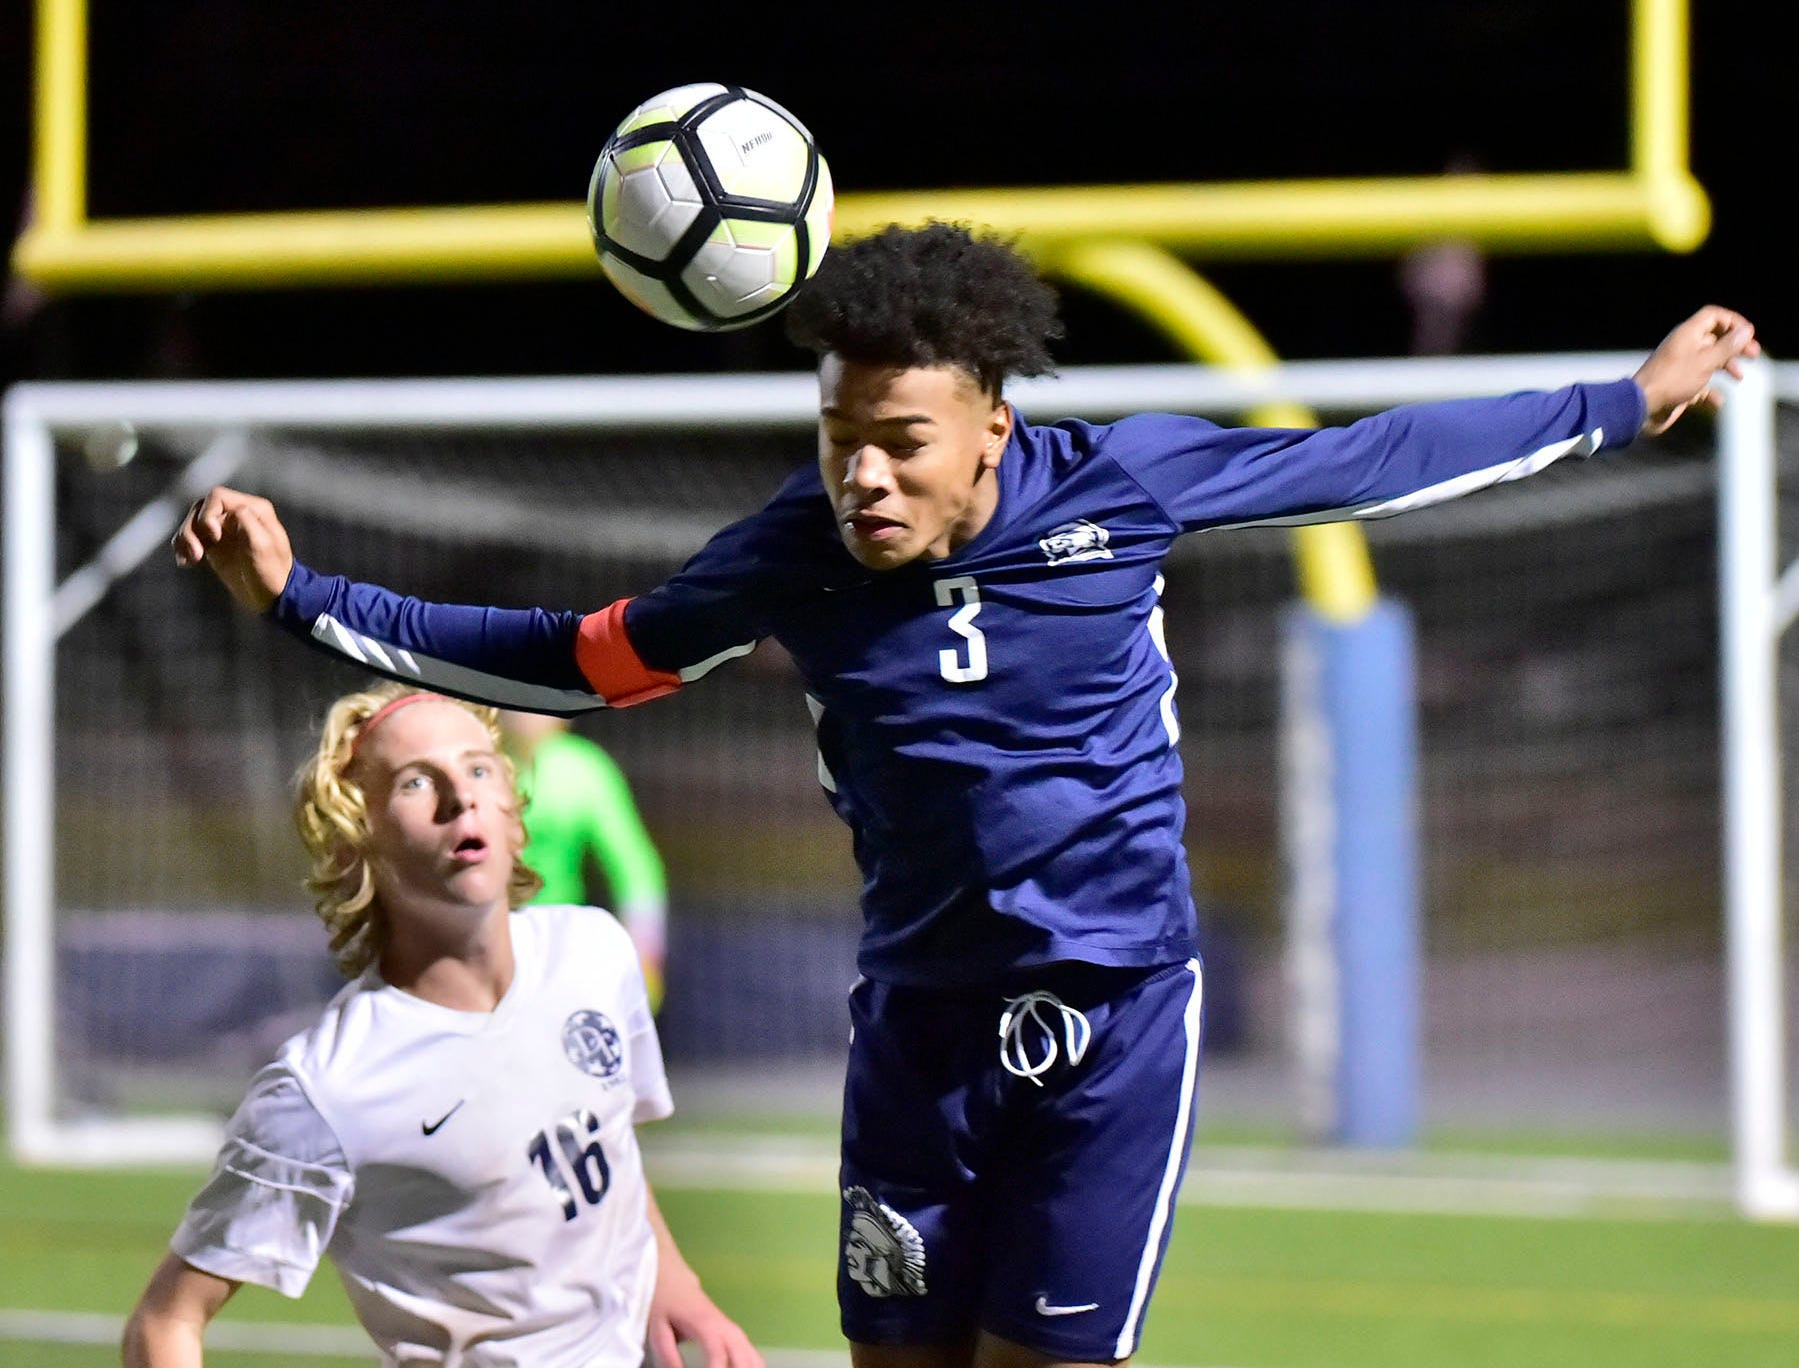 Ebe Hewitt of Chambersburg heads the ball in front of Cole Larson of Dallastown. Chambersburg lost a first round D3 soccer match to Dallastown 2-1 on Tuesday, Oct. 23, 2018.